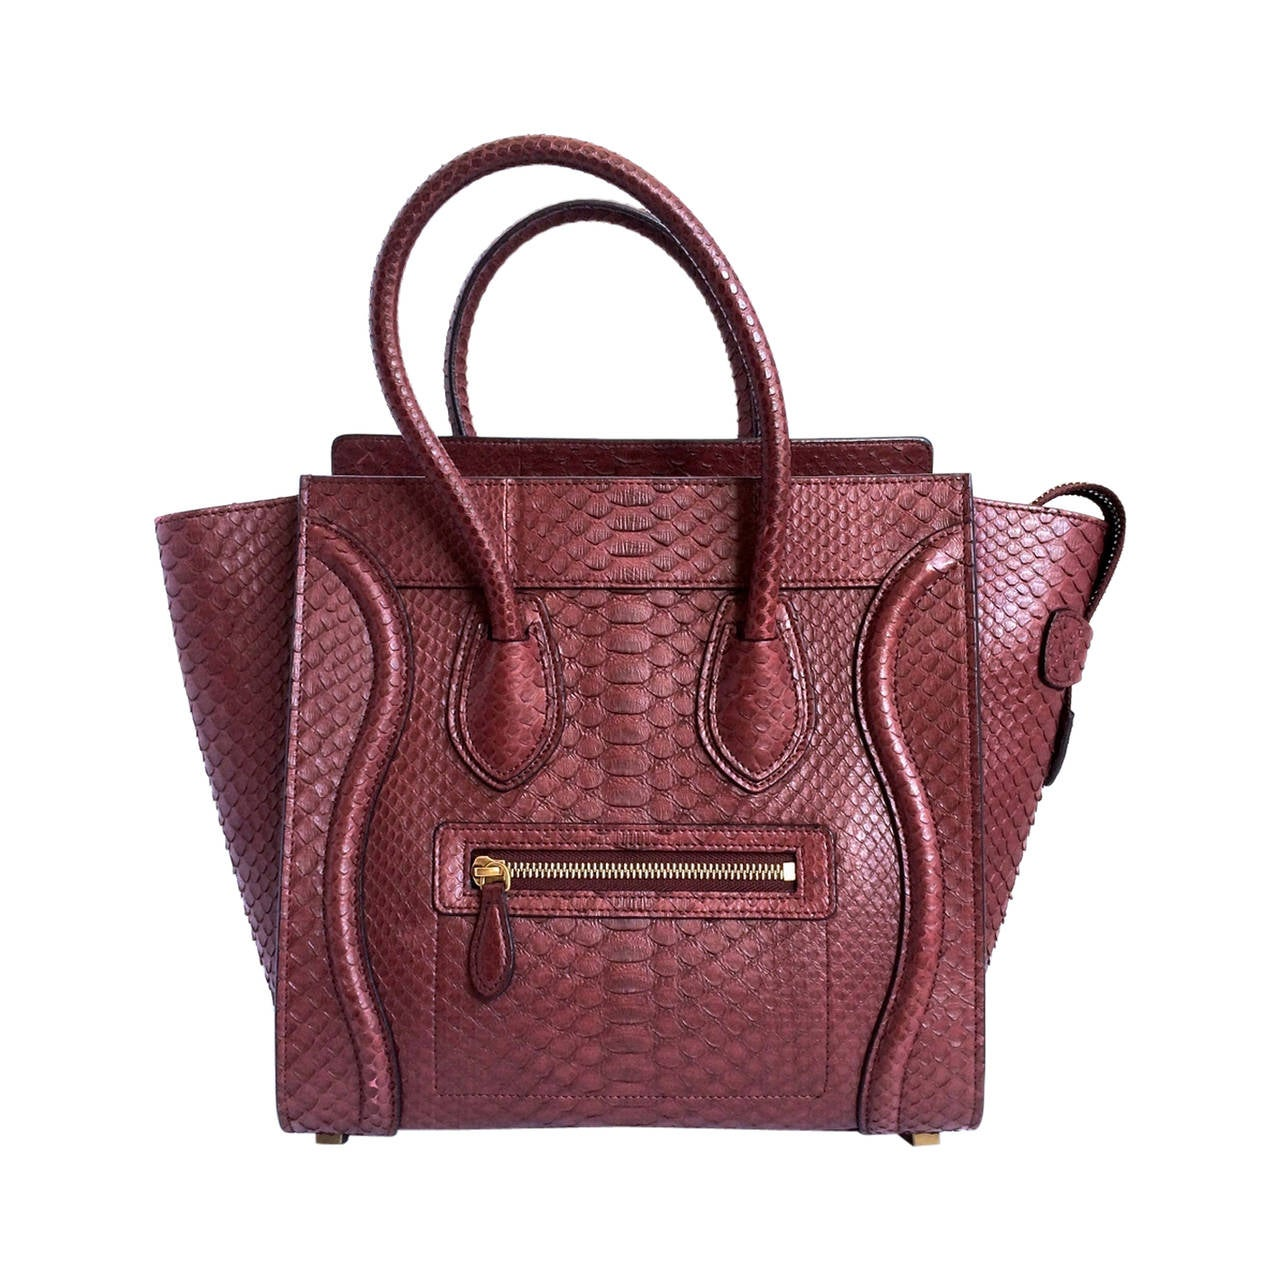 authentic celine phantom - celine burgundy handbag, celine micro luggage tote replica